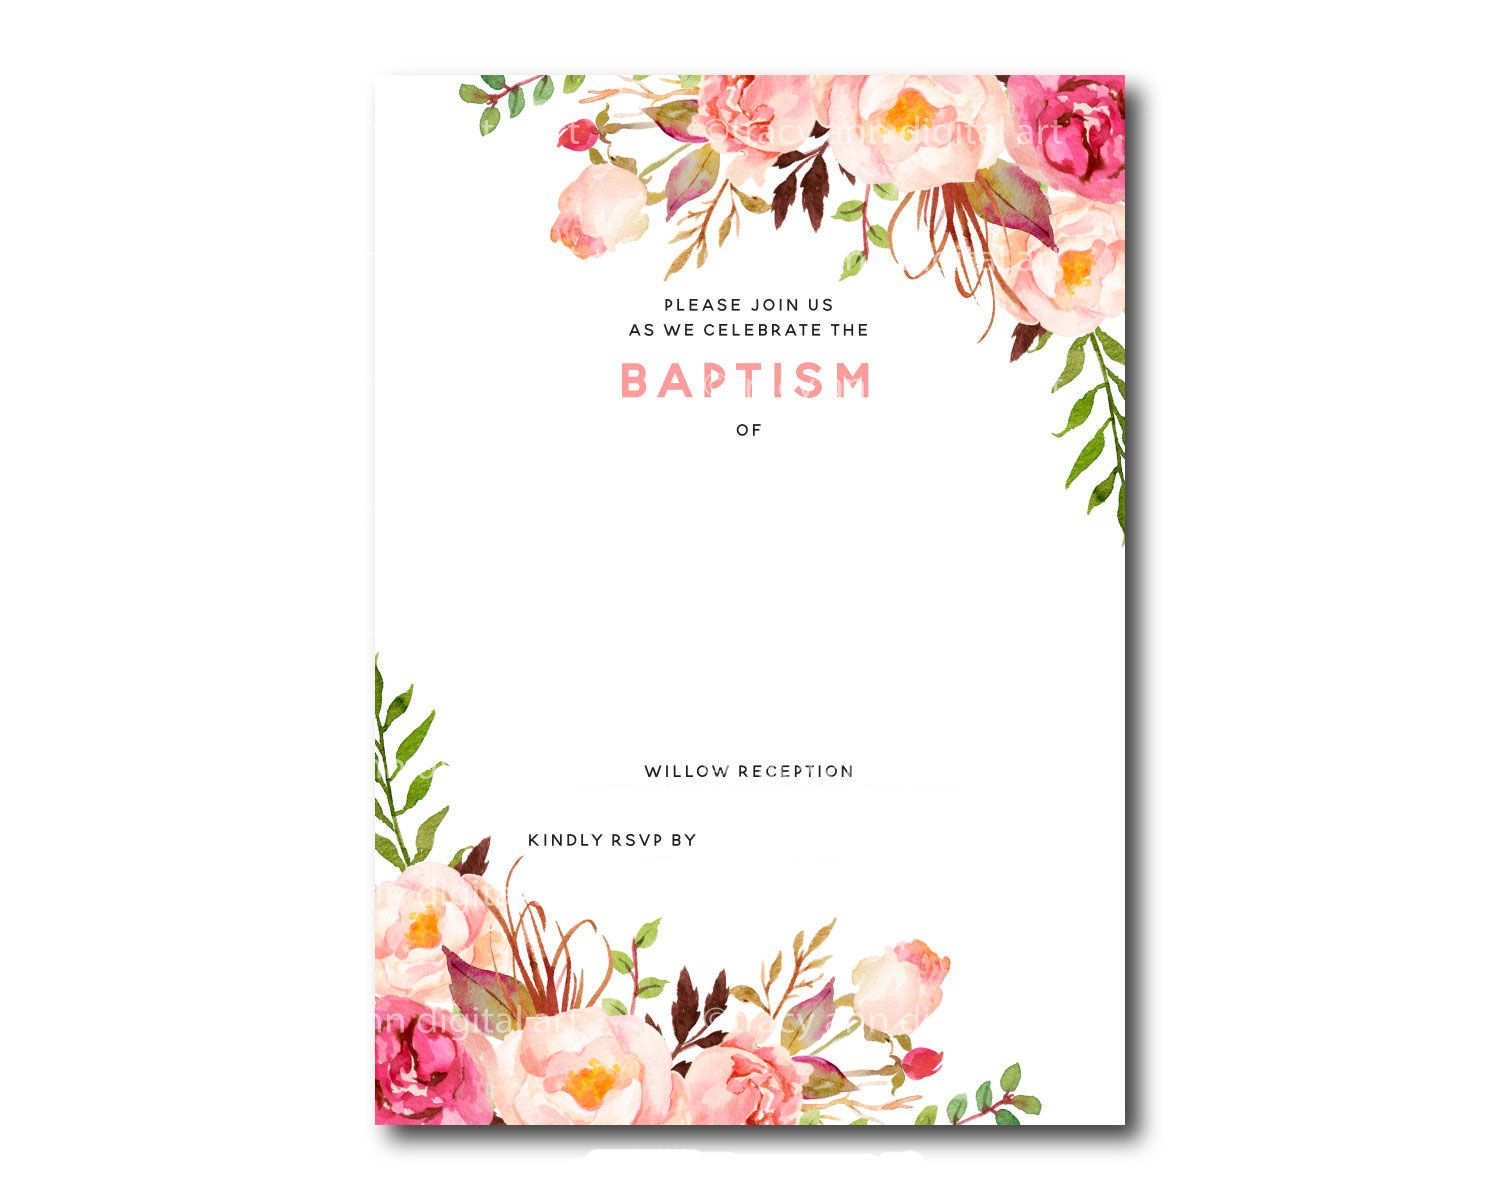 Free Bridal Shower Invitations Templates Freeprintablebaptismfloralinvitationtemplate 1500×1200 .